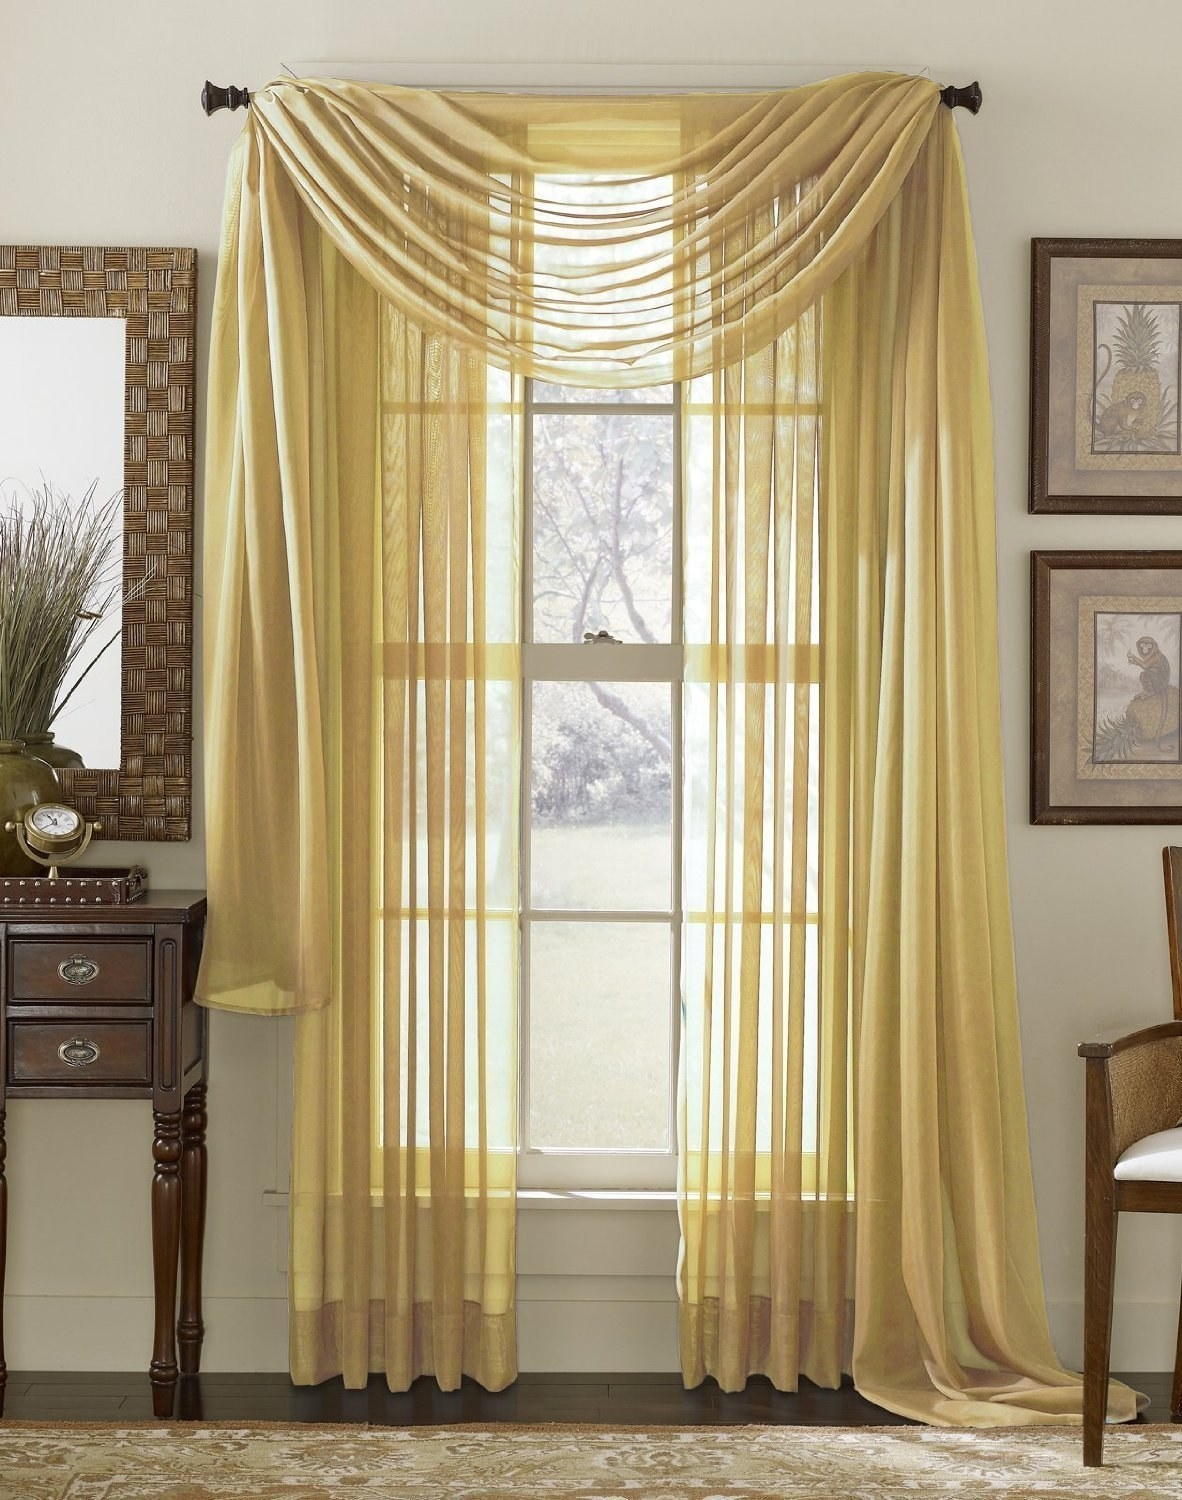 Draped golden sheer curtains on a window